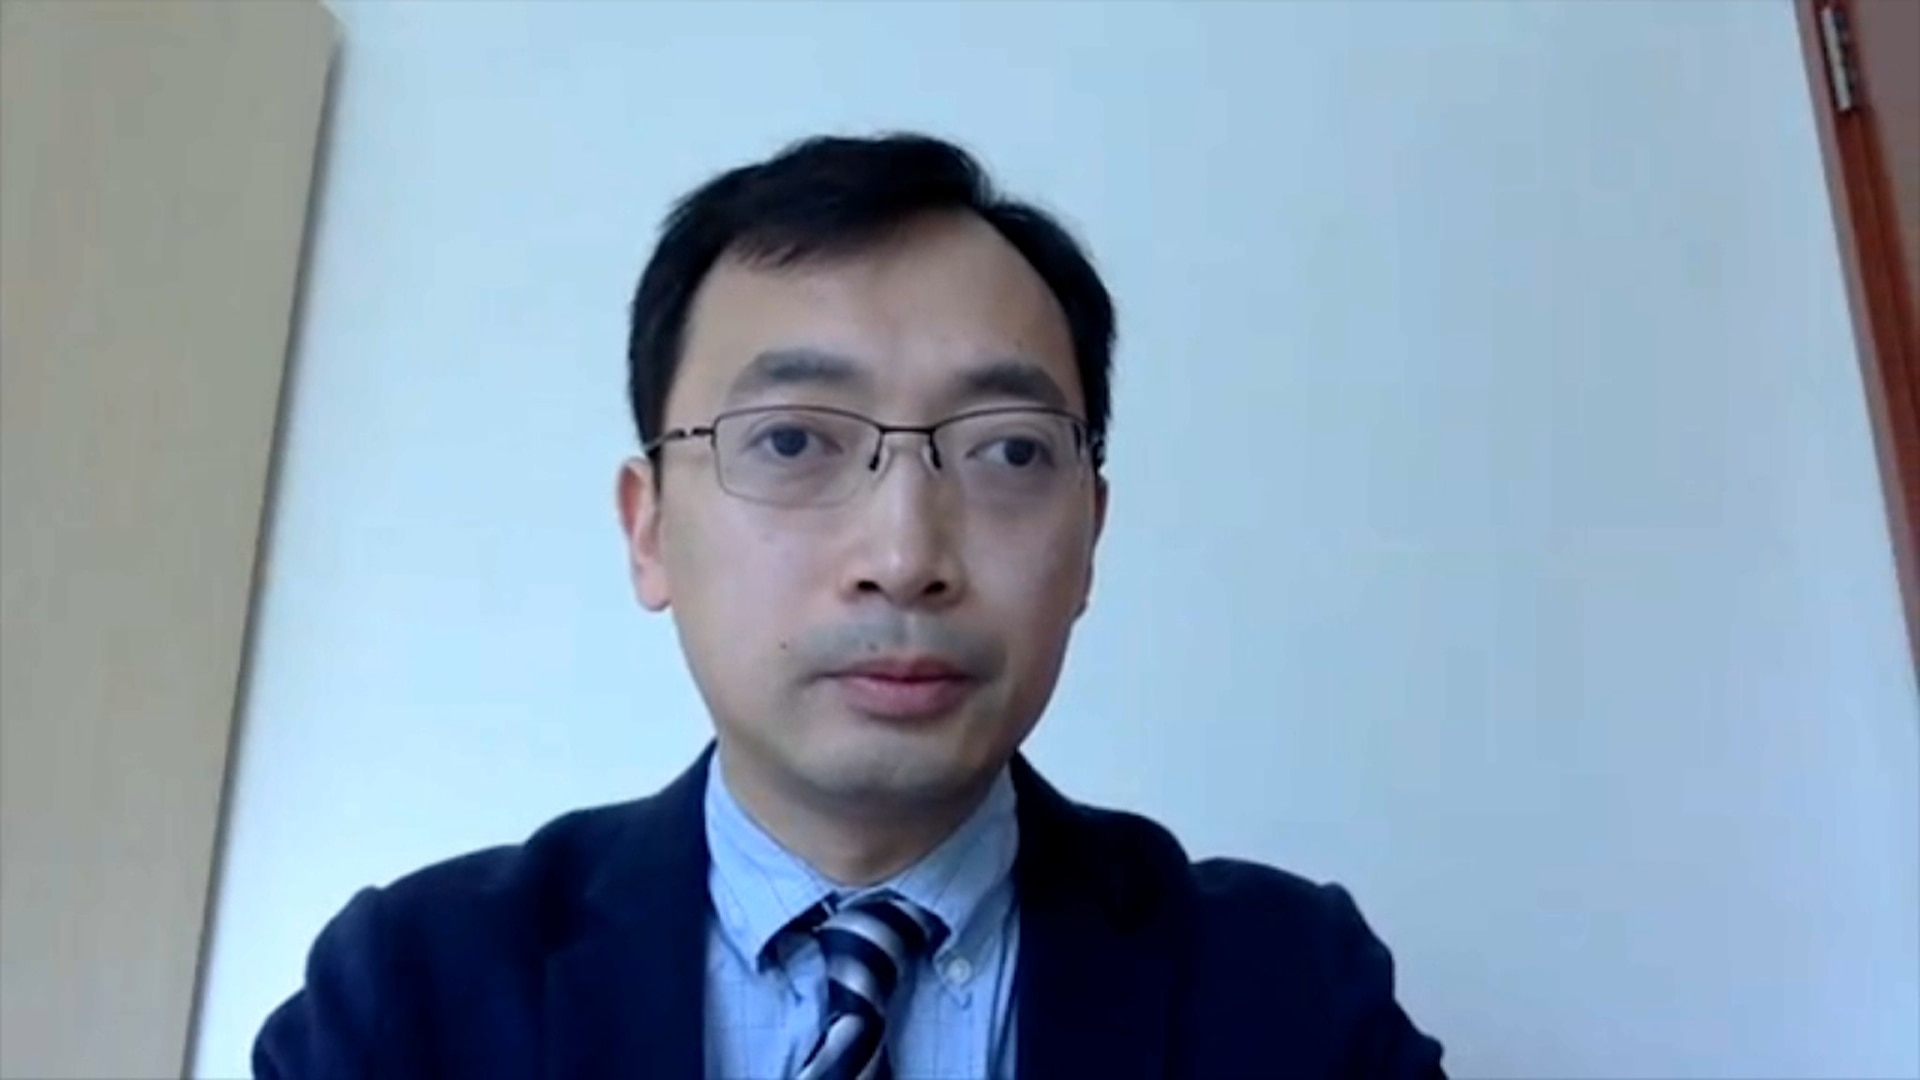 Heng Wang is an expert in international business and economic law at University of New South Wales.